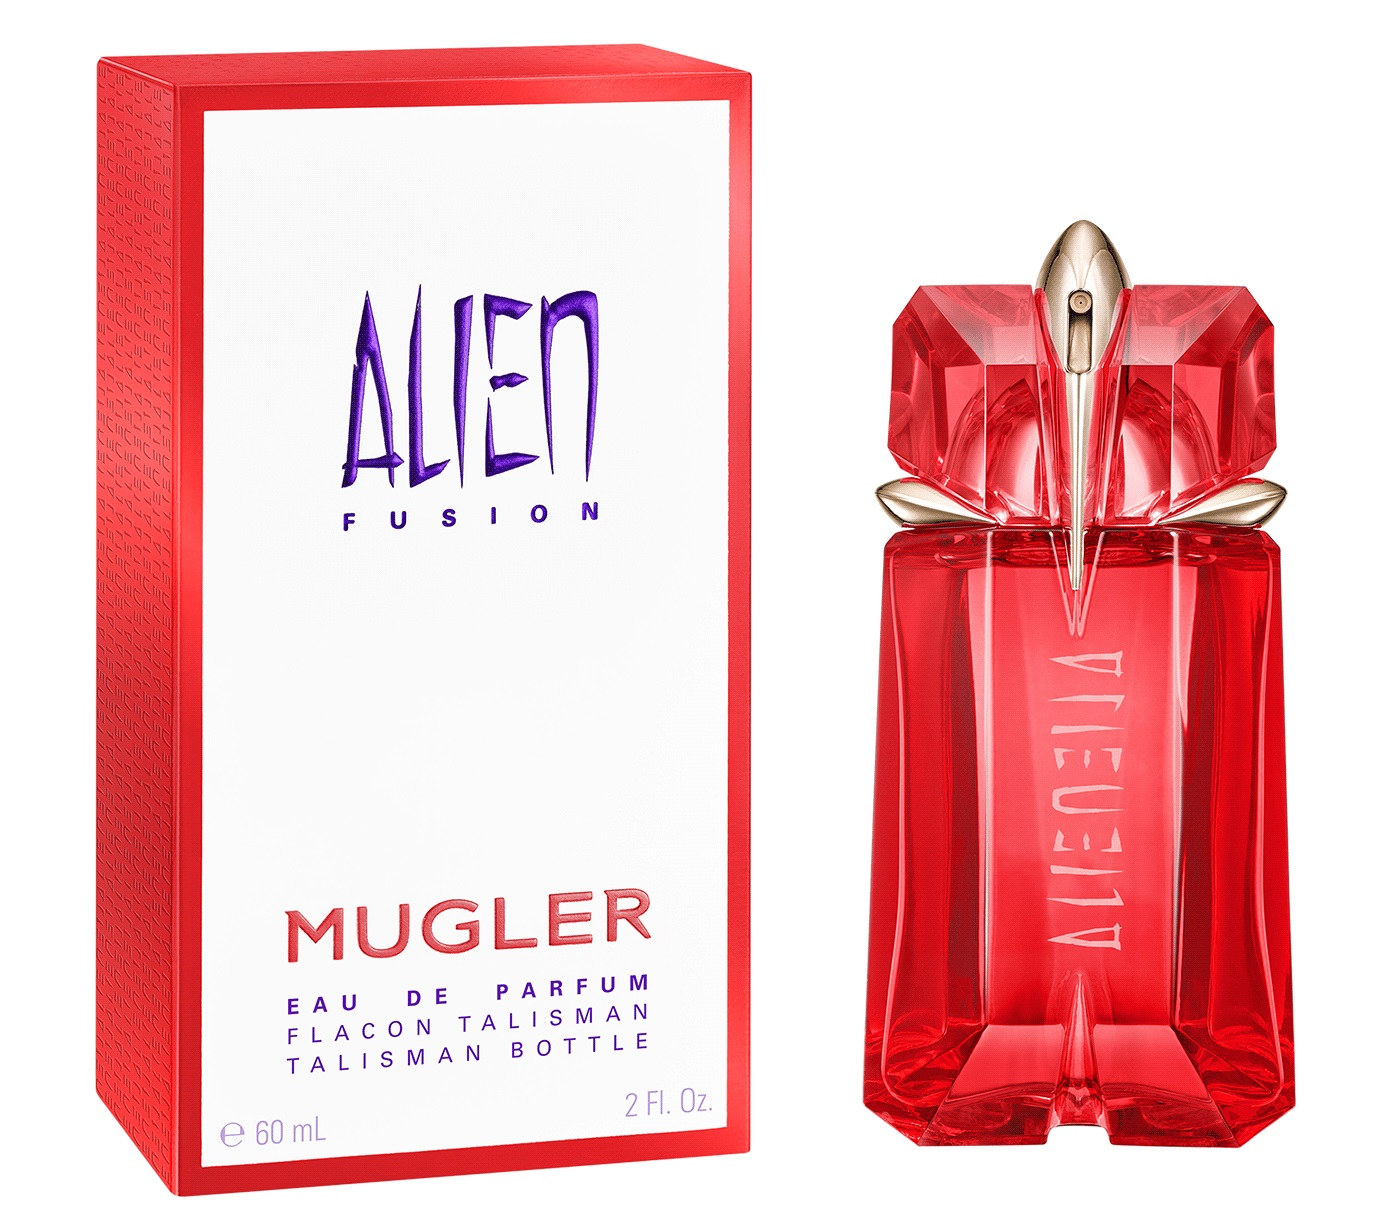 Alien Fusion Mugler Perfume A New Fragrance For Women 2019